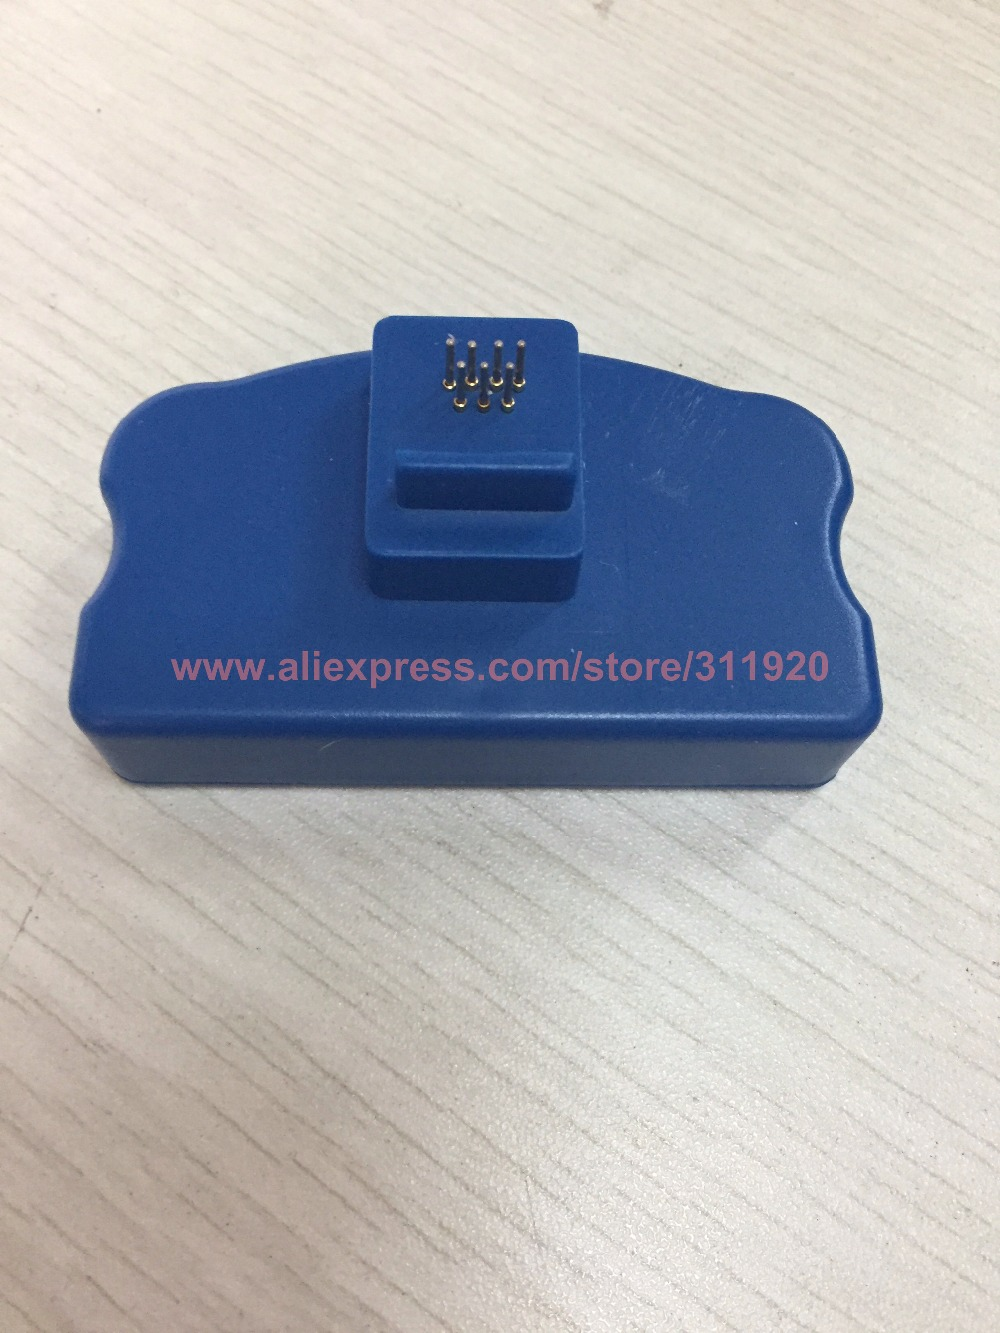 Maintenance Tank Chip Resetter For Epson for epson 7700 9700 7710 9710 Printer chip resetter for epson stylus pro 7710 9710 printer maintenance tank chip